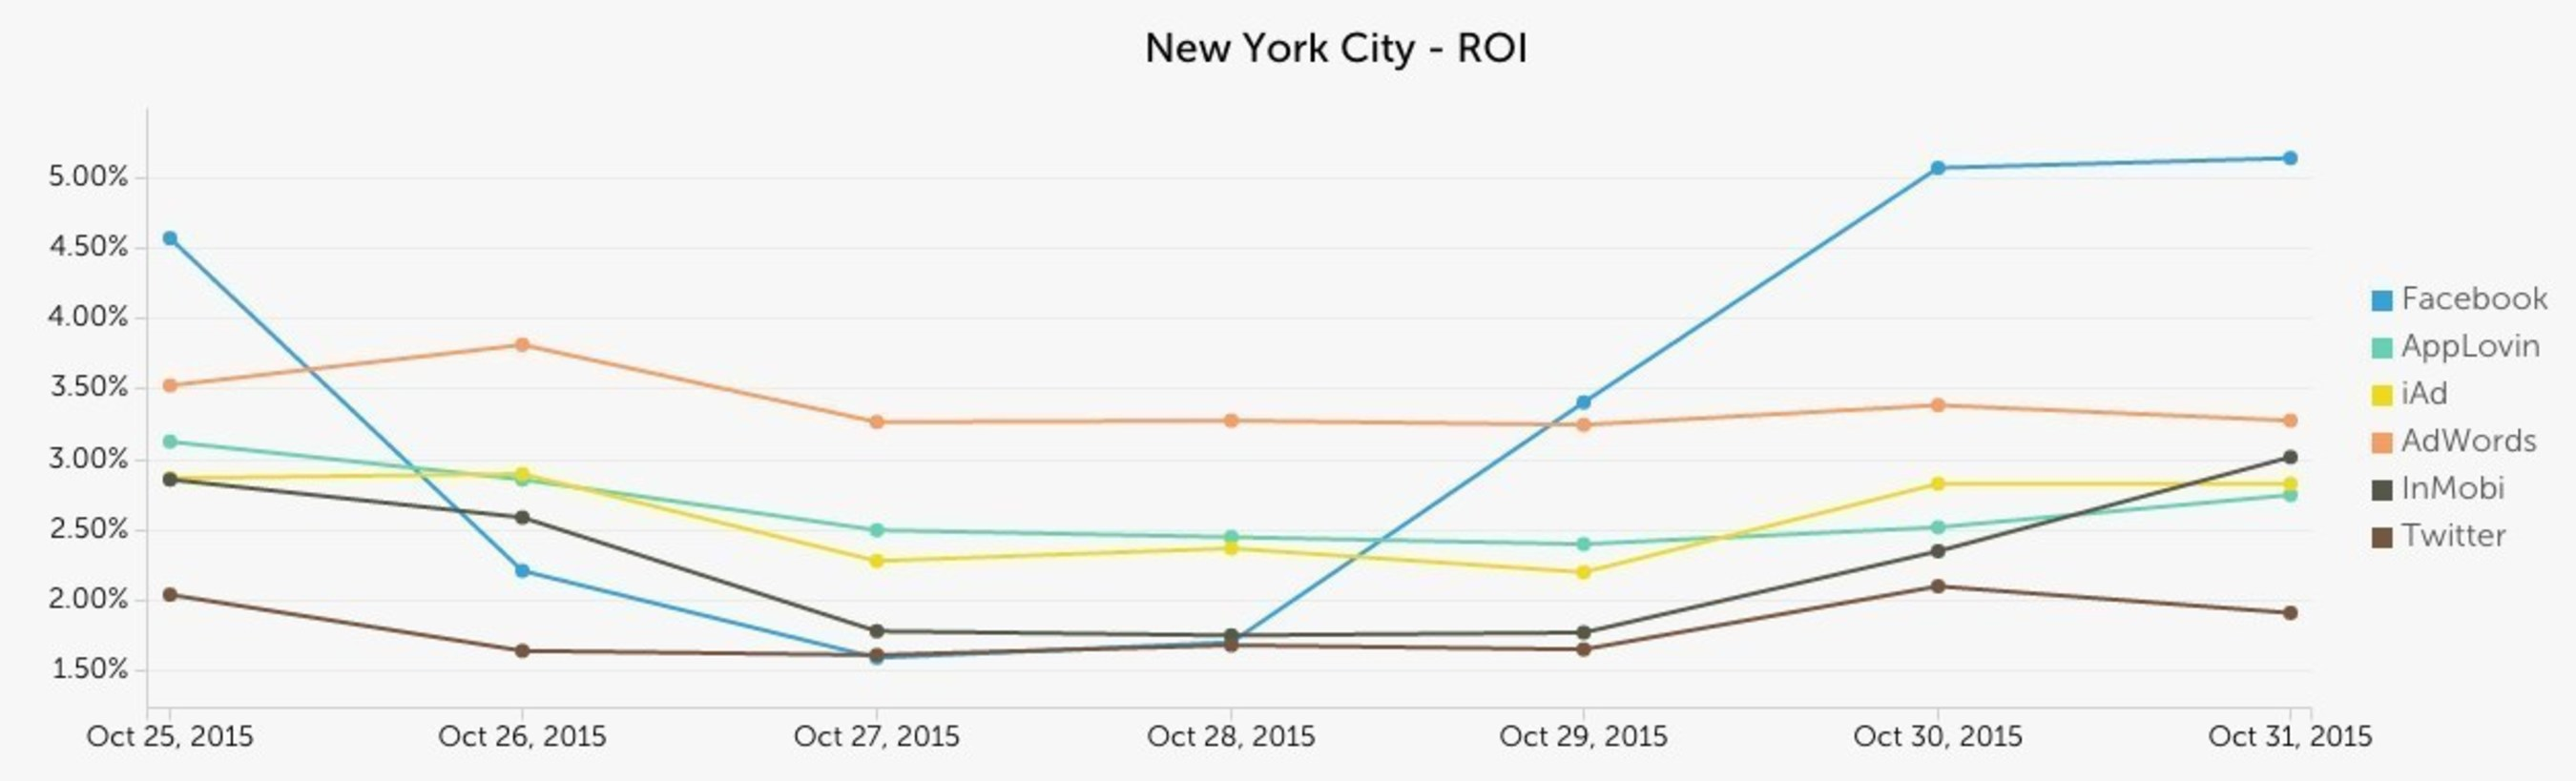 Singular Now Provides Mobile Campaign ROI From Over 250 Sources